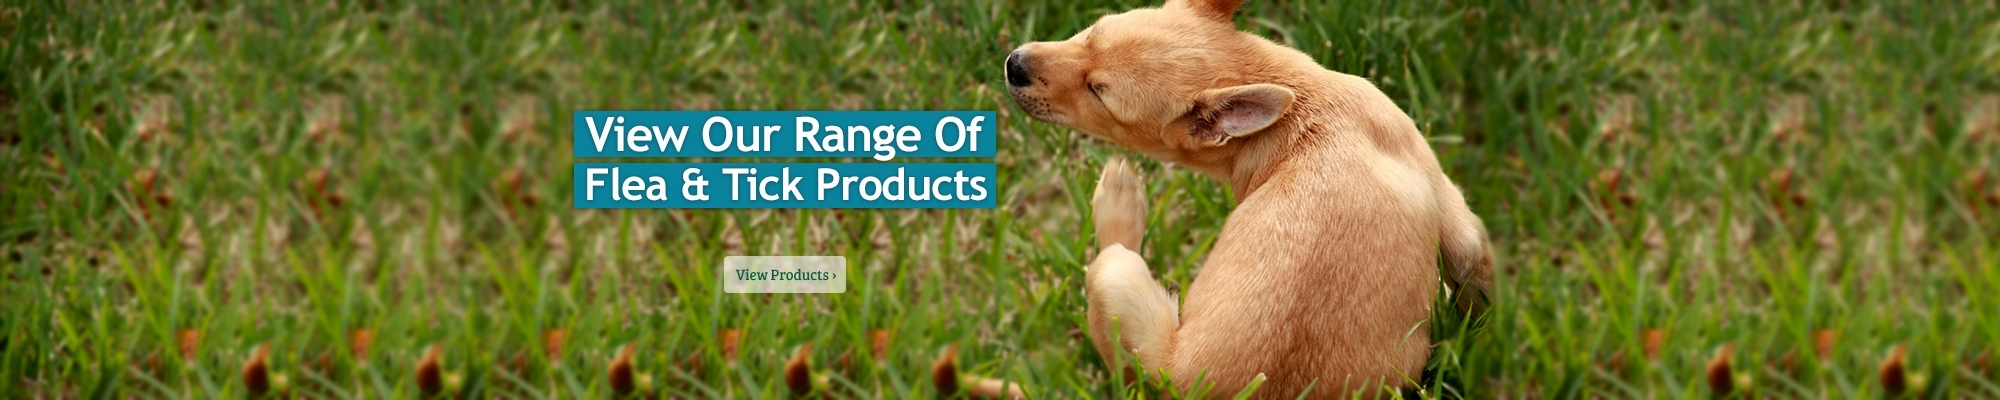 Fleas and Ticks feature products!